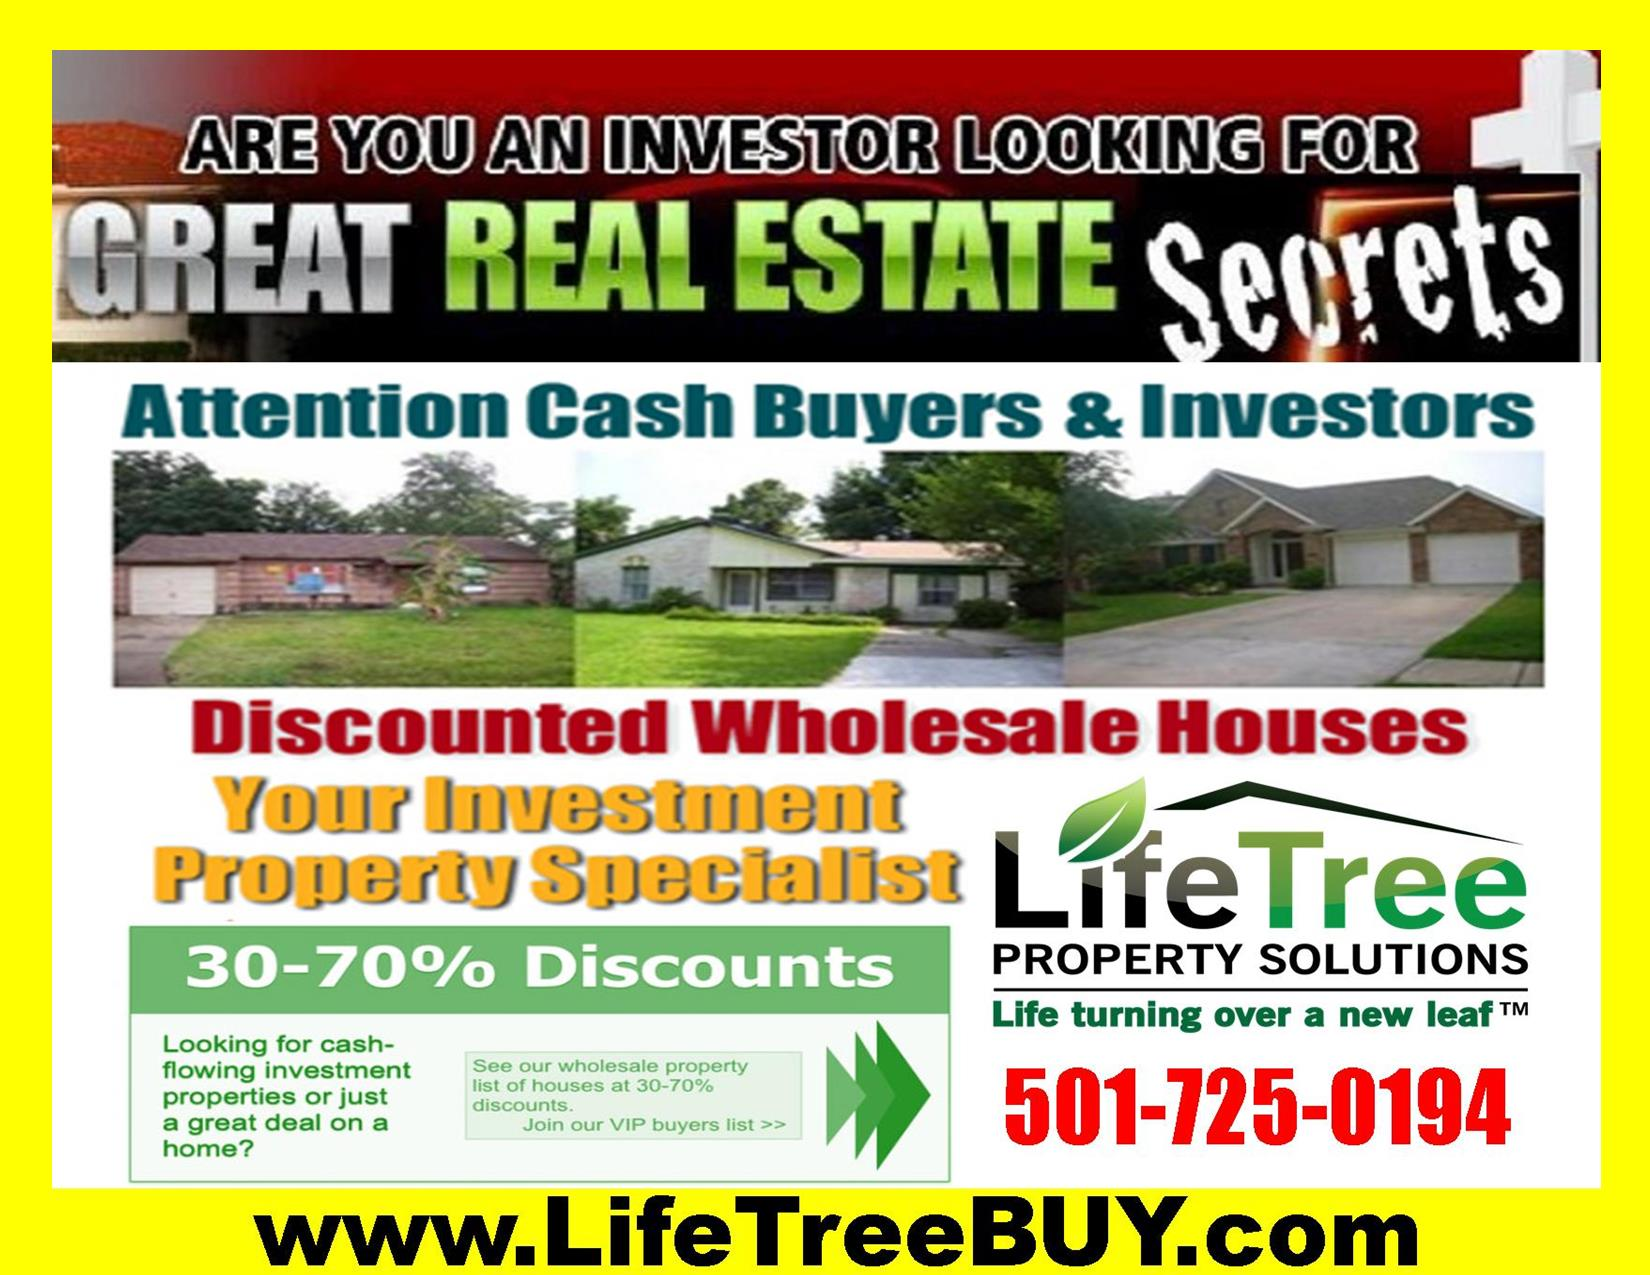 Investment Properties, Great Real Estate Deals, Discounted